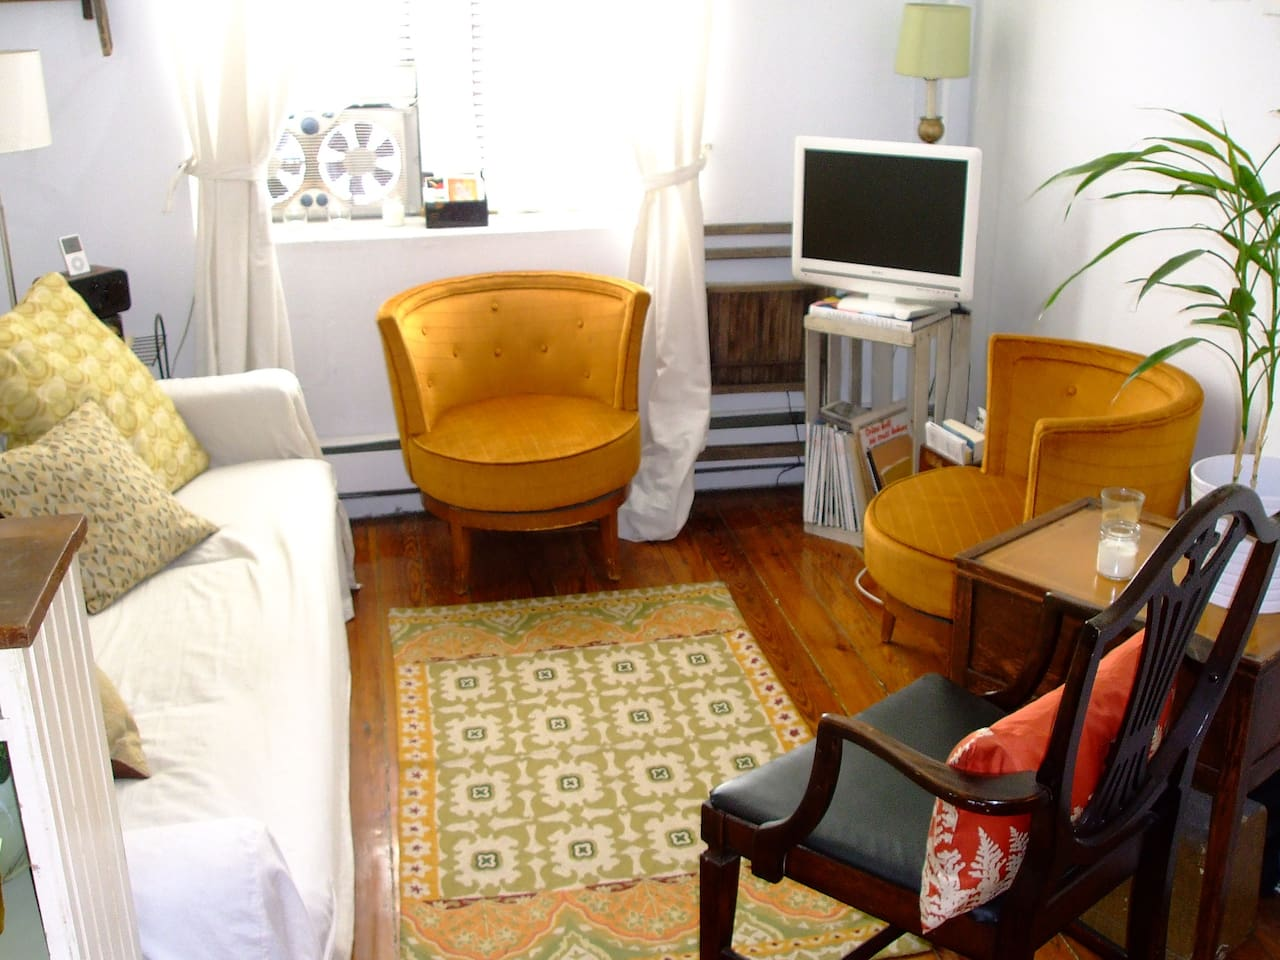 The vibrant, warm and cozy living room.  People feel very welcomed and comfortable here. The orange chairs swivel!